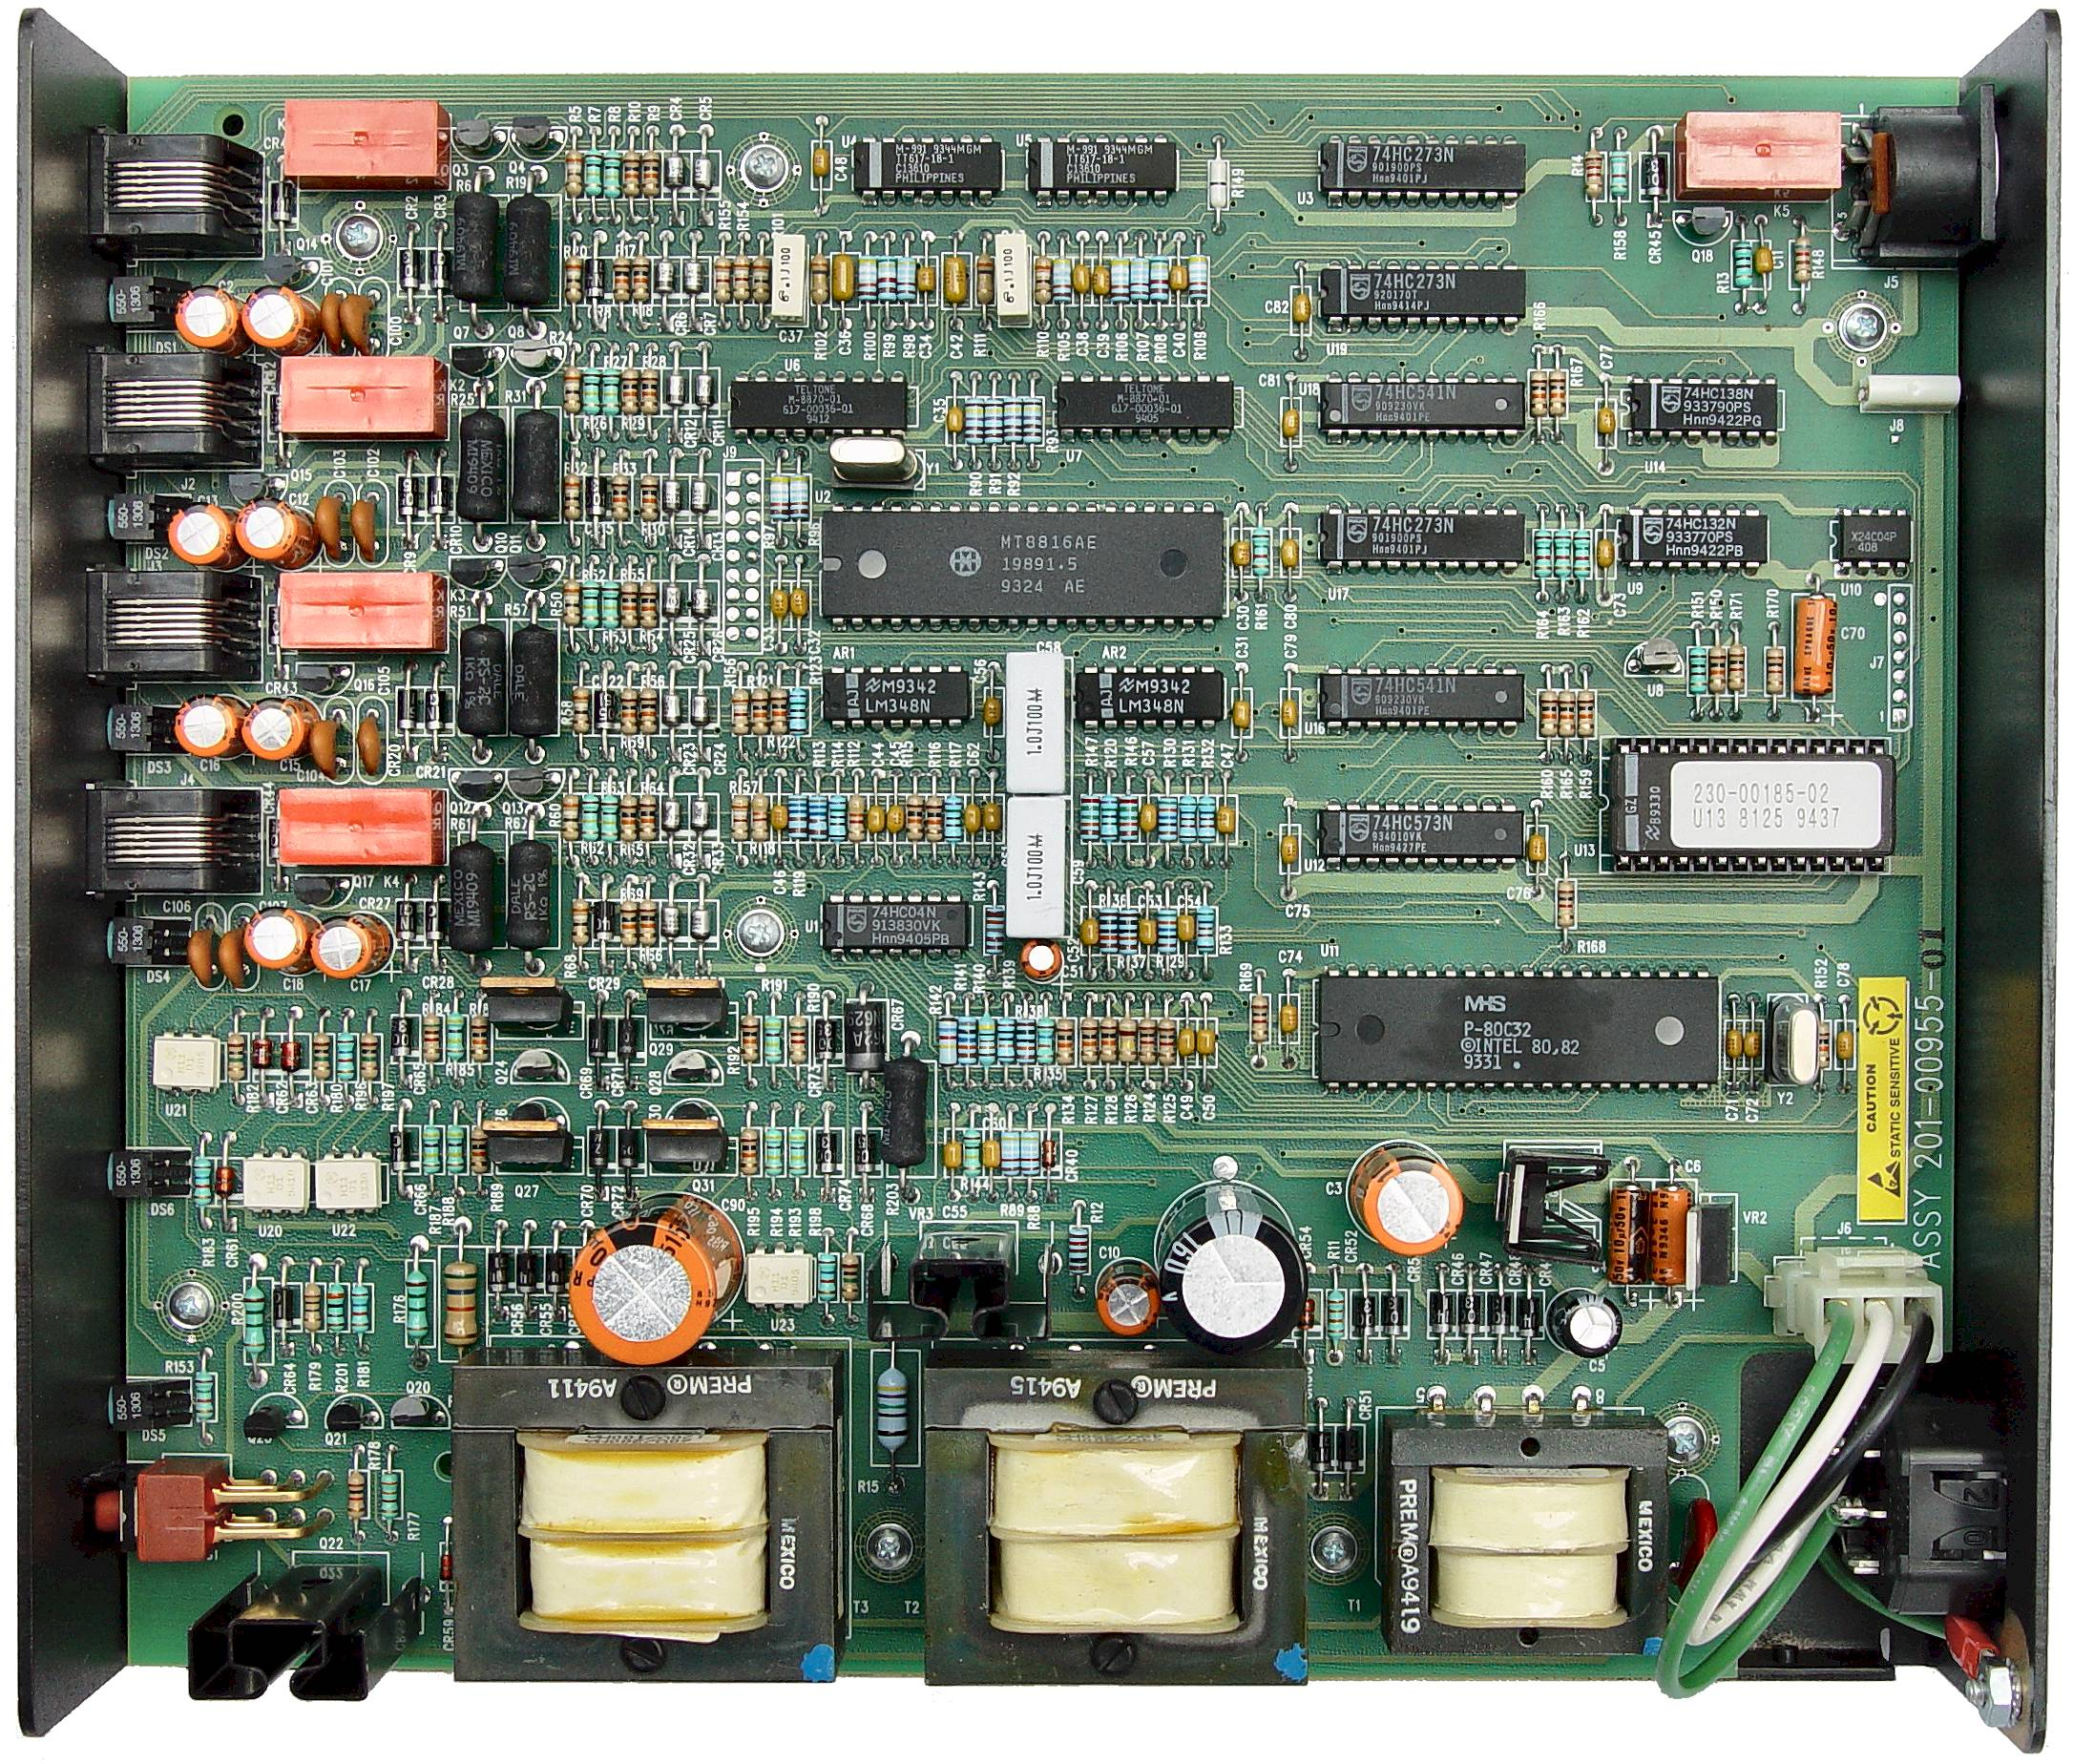 Telephone Line Simulator Free Circuit Simulatorcircuit Design And Simulation Software List Overall View Of Printed Board